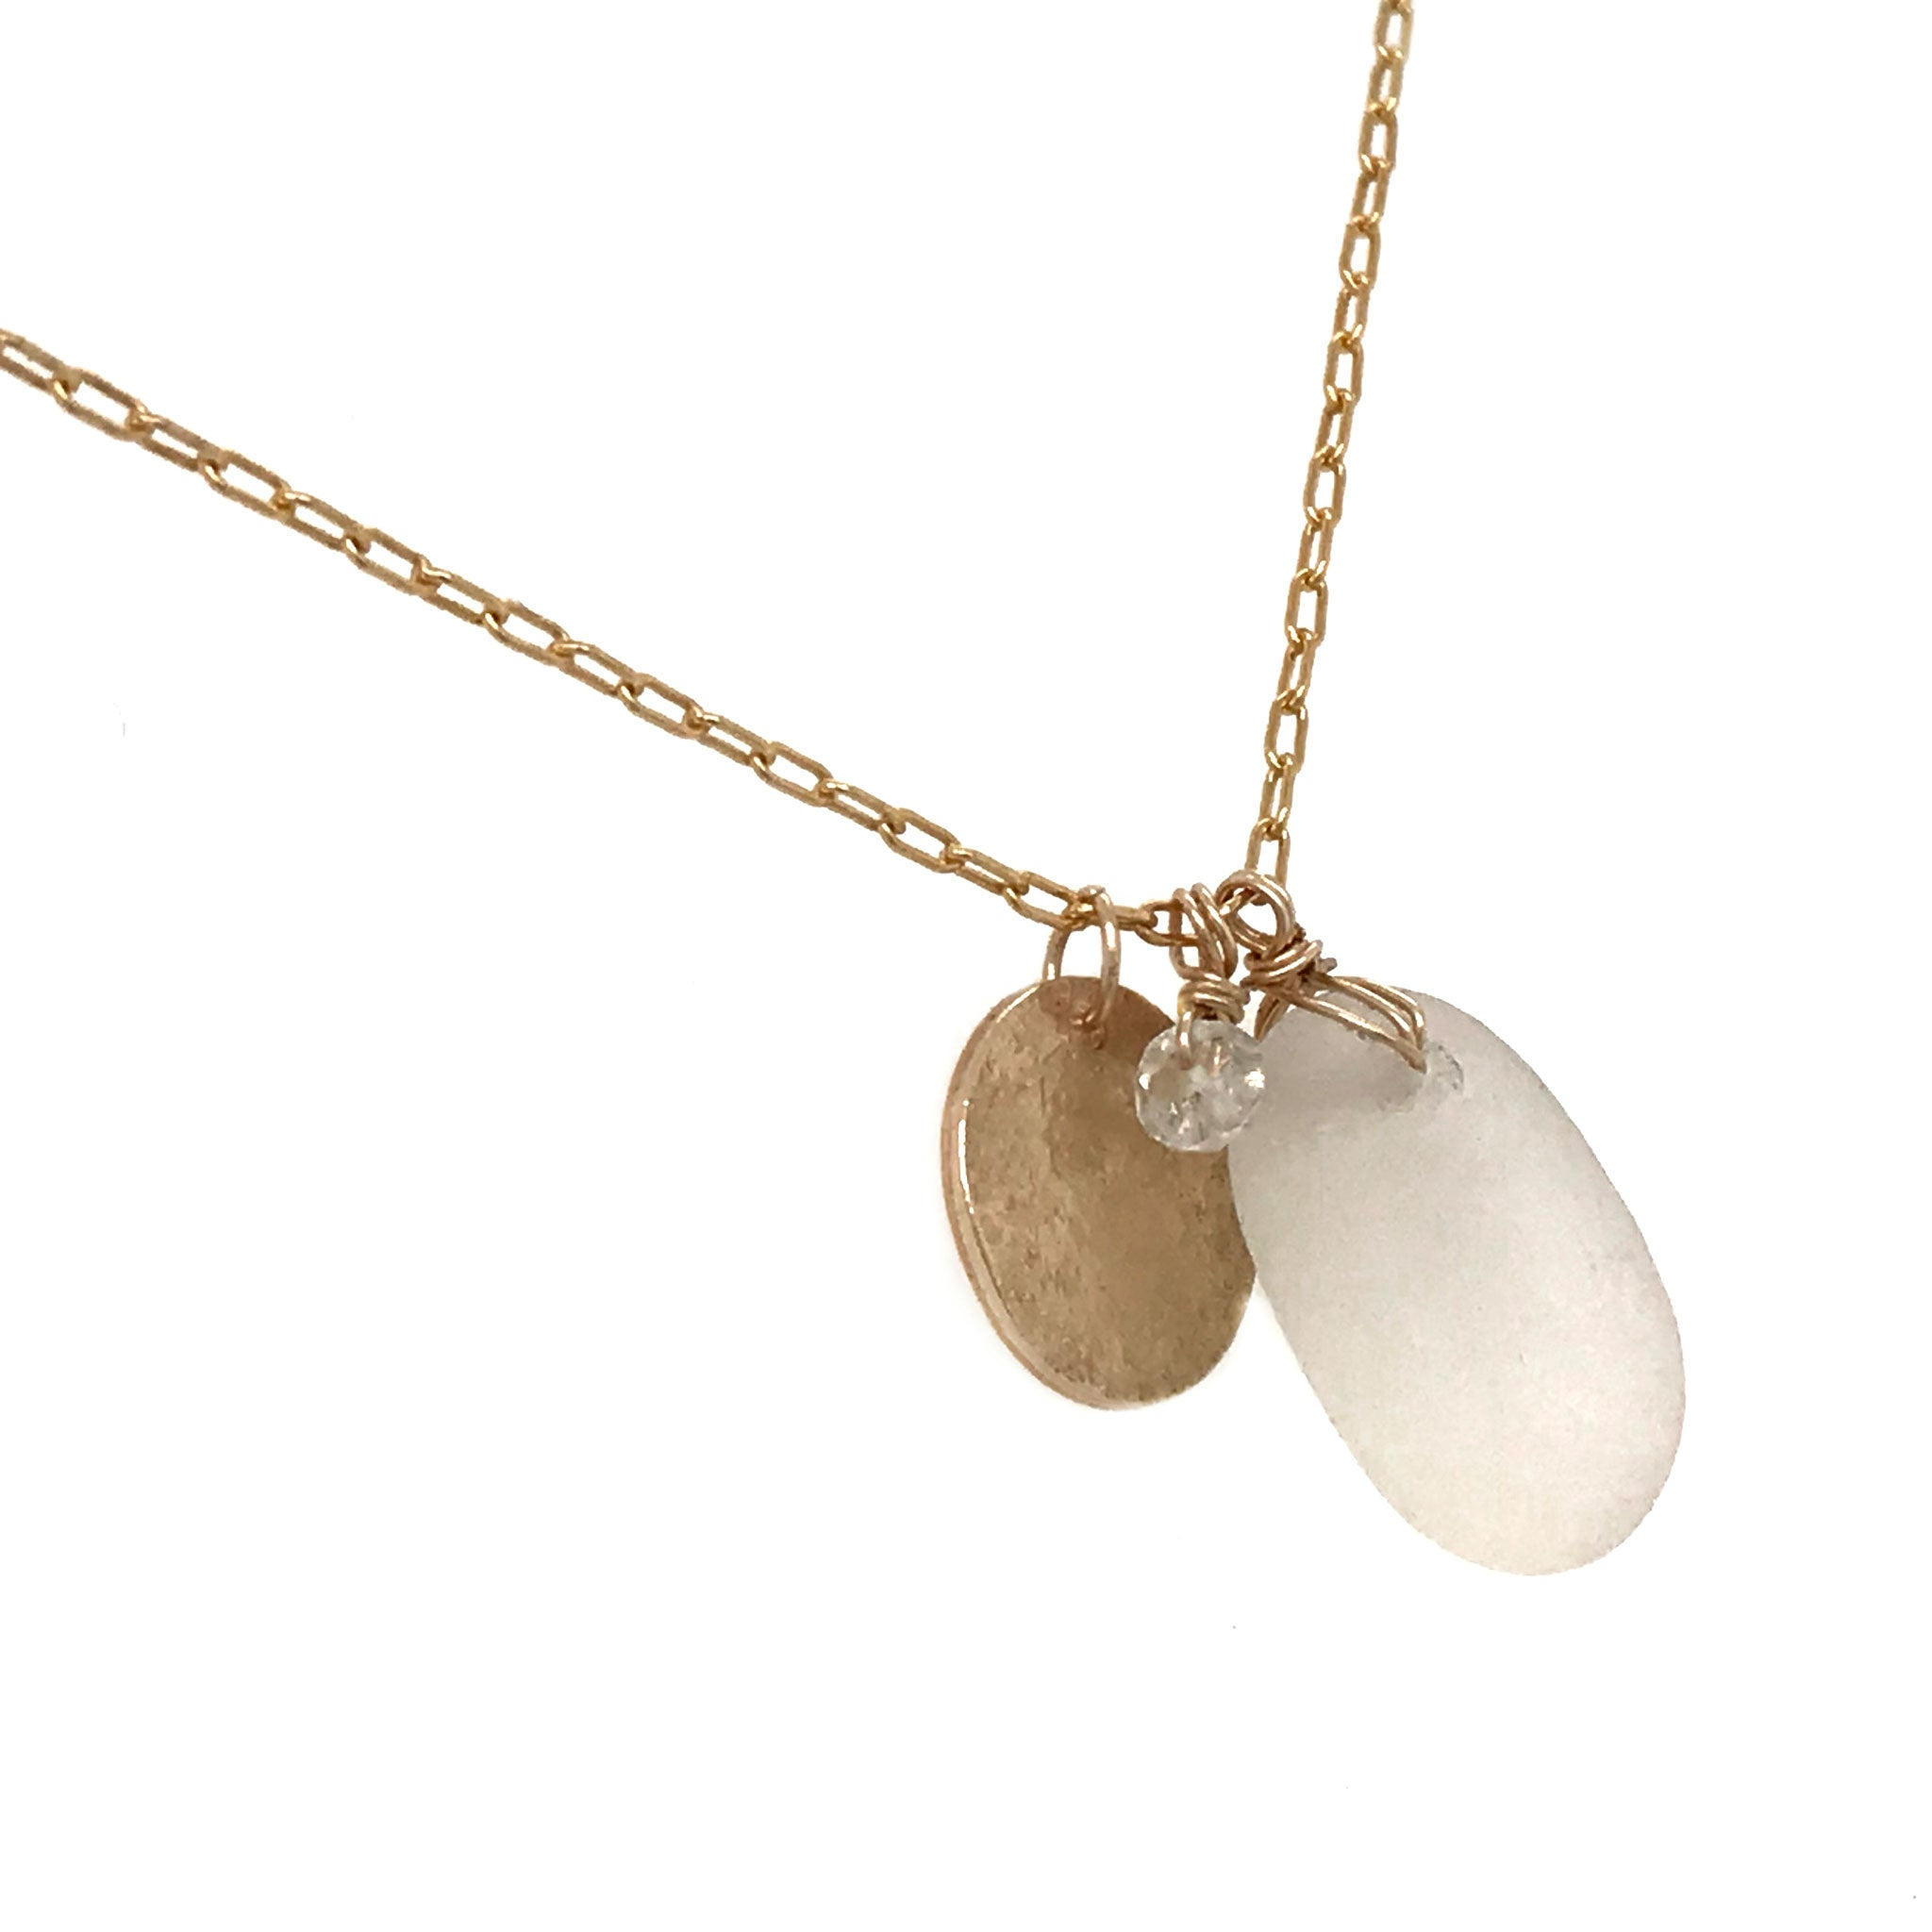 gold disc charm necklace with clear seaglass pendant kriket broadhurst jewellery